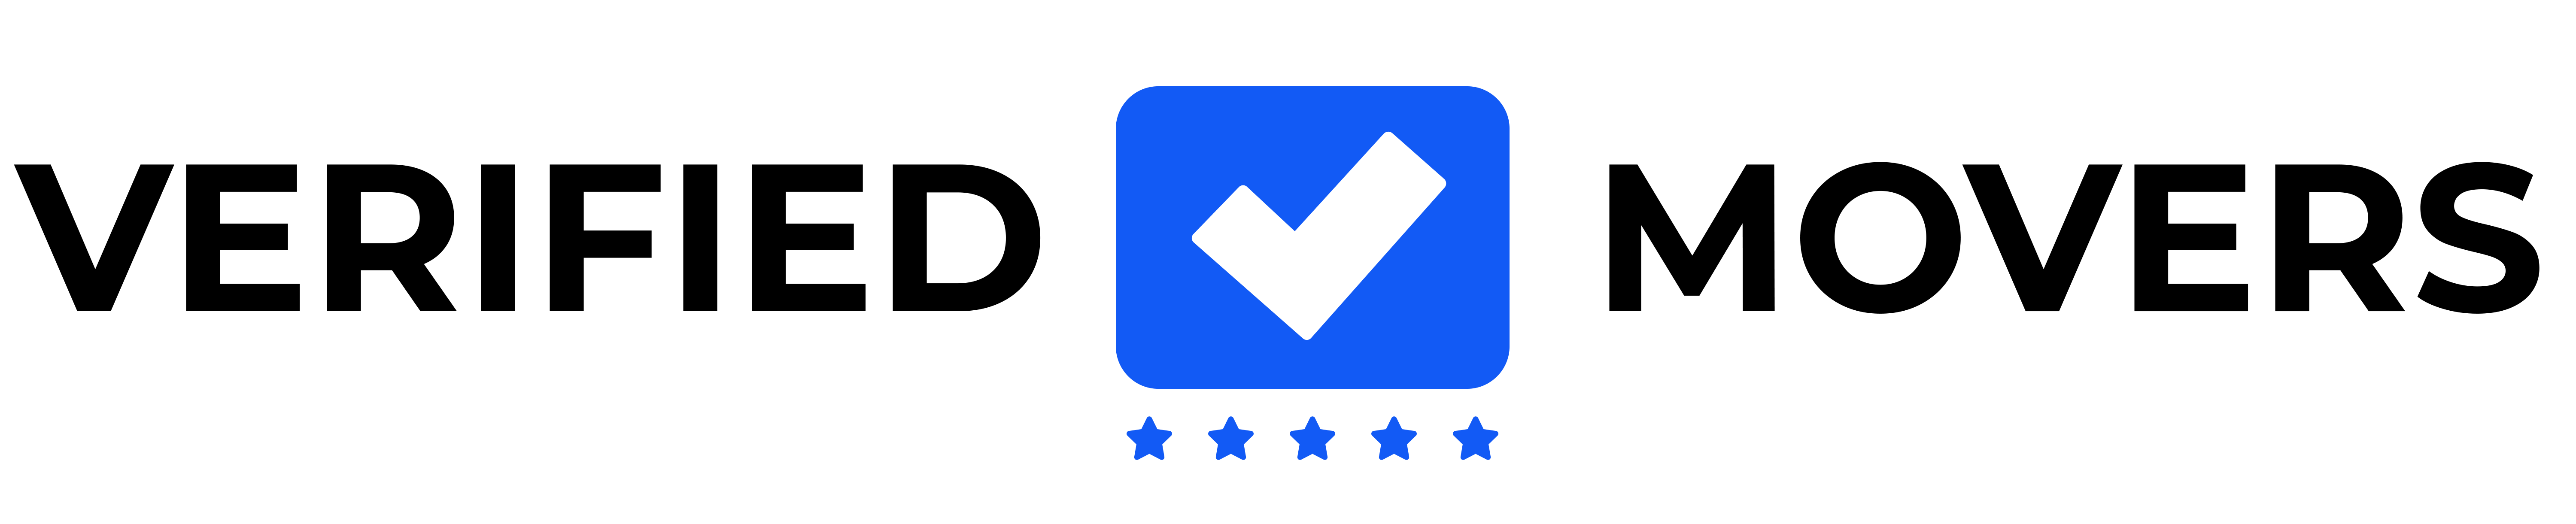 Verified Movers Announces Most Comprehensive Site for Moving Company Reviews